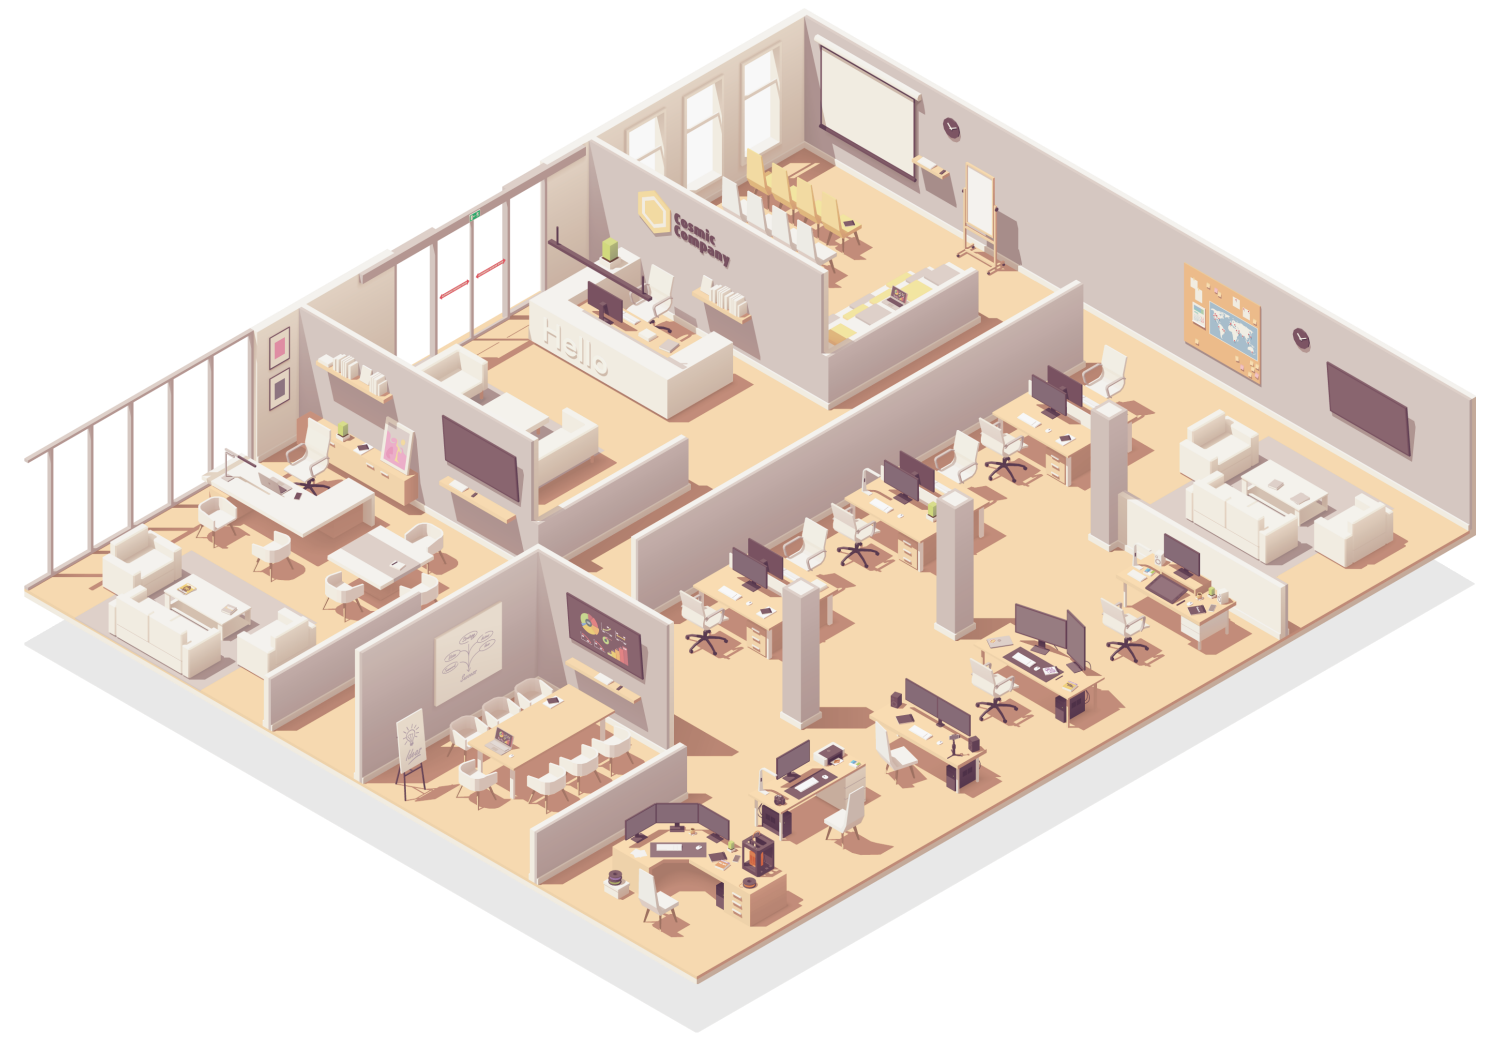 isometric cutaway illustration of a suite of offices where Cosmic Cleaning Bristol might provide contract cleaning services